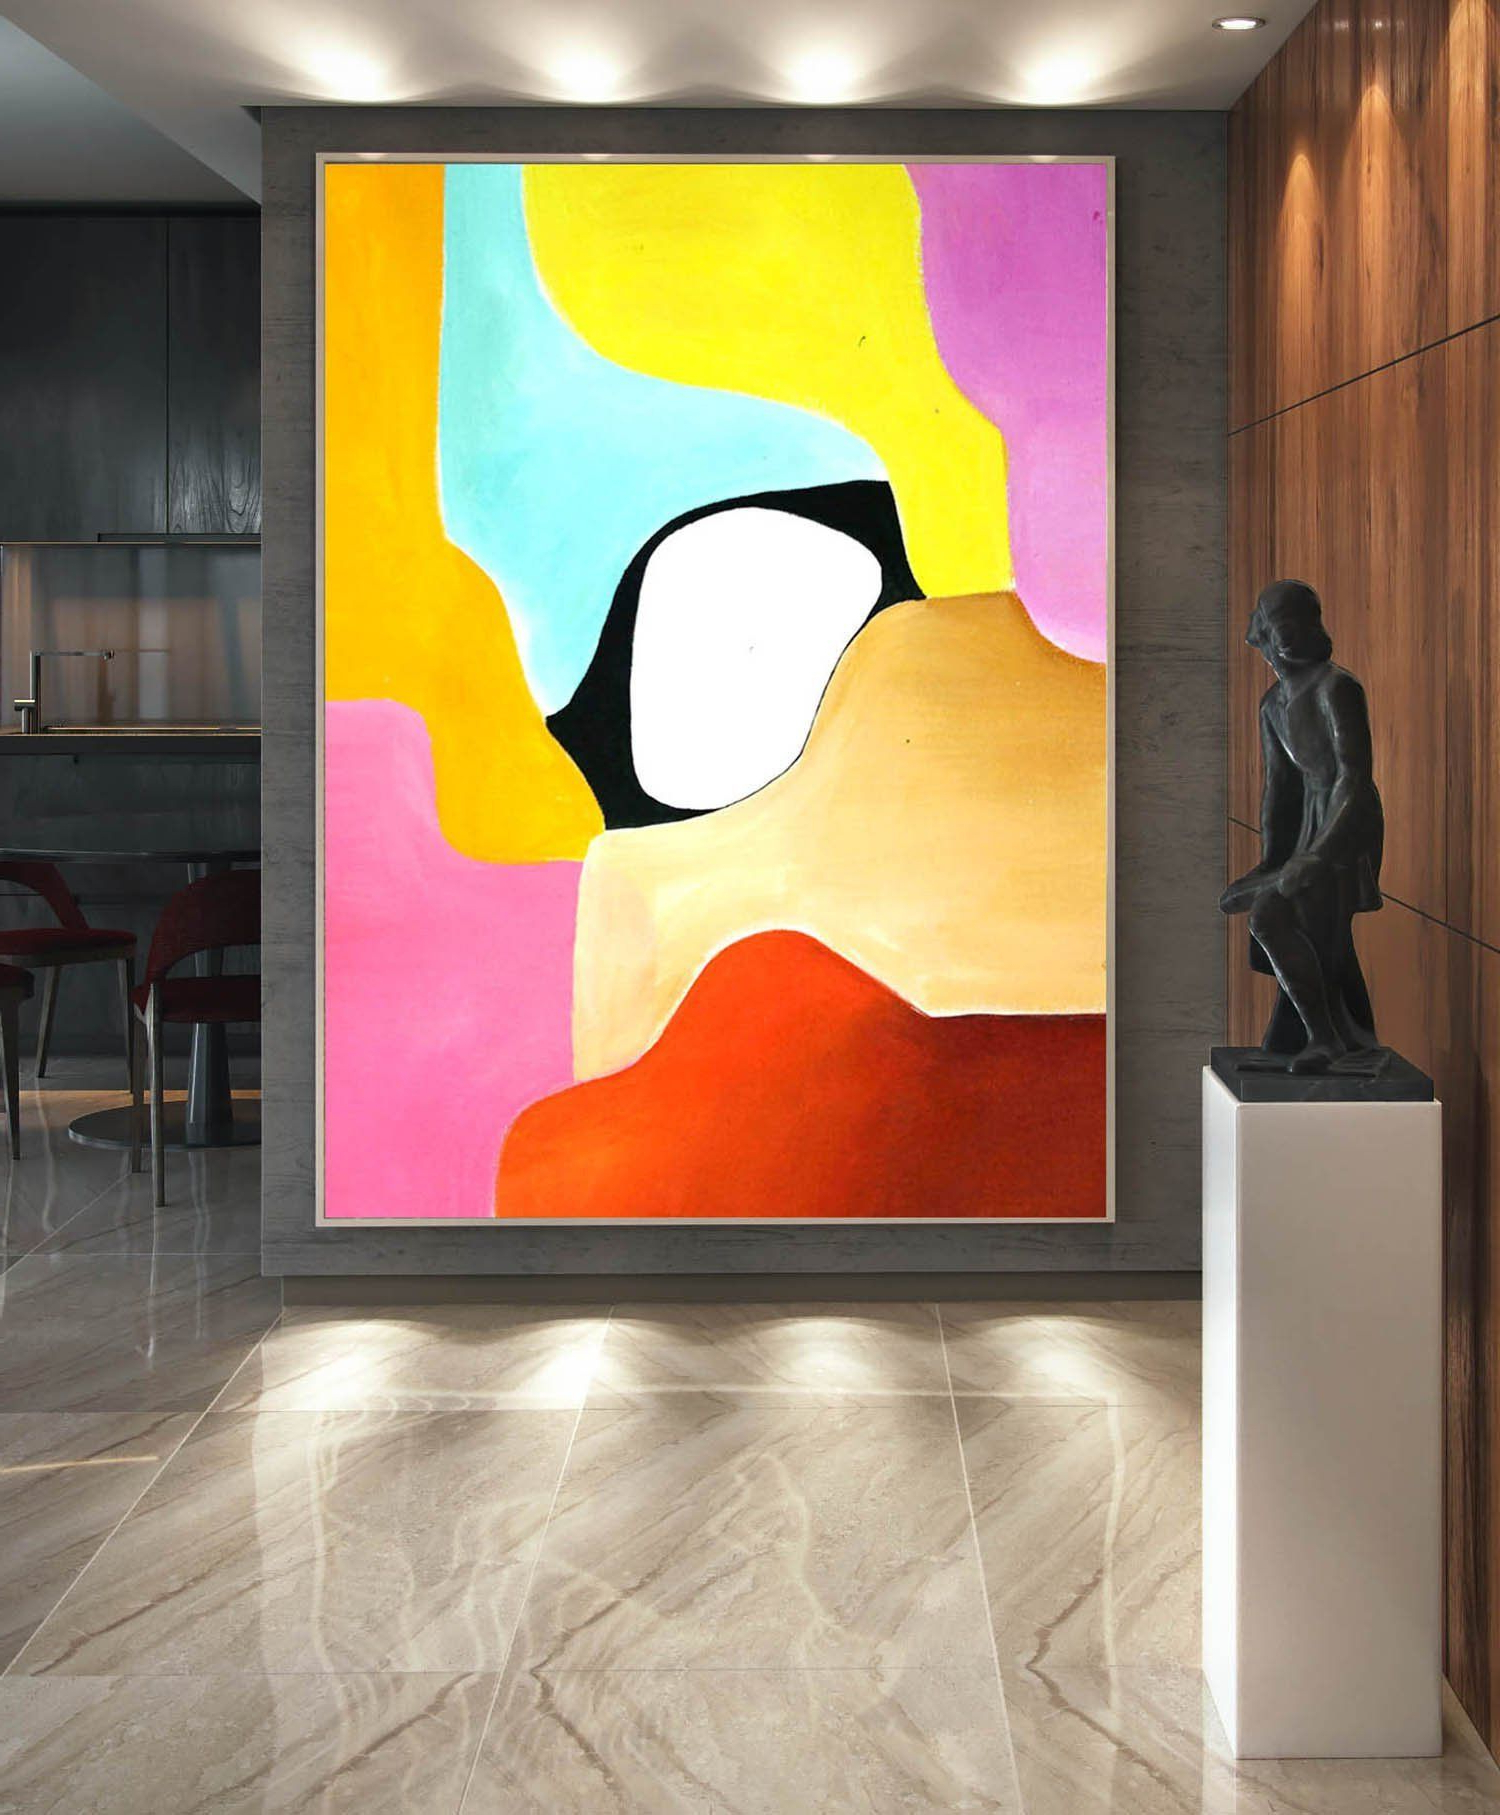 Recent Abstract Painting On Canvas – Extra Large Wall Art, Contemporary Art Within Large Modern Industrial Wall Decor (View 16 of 20)